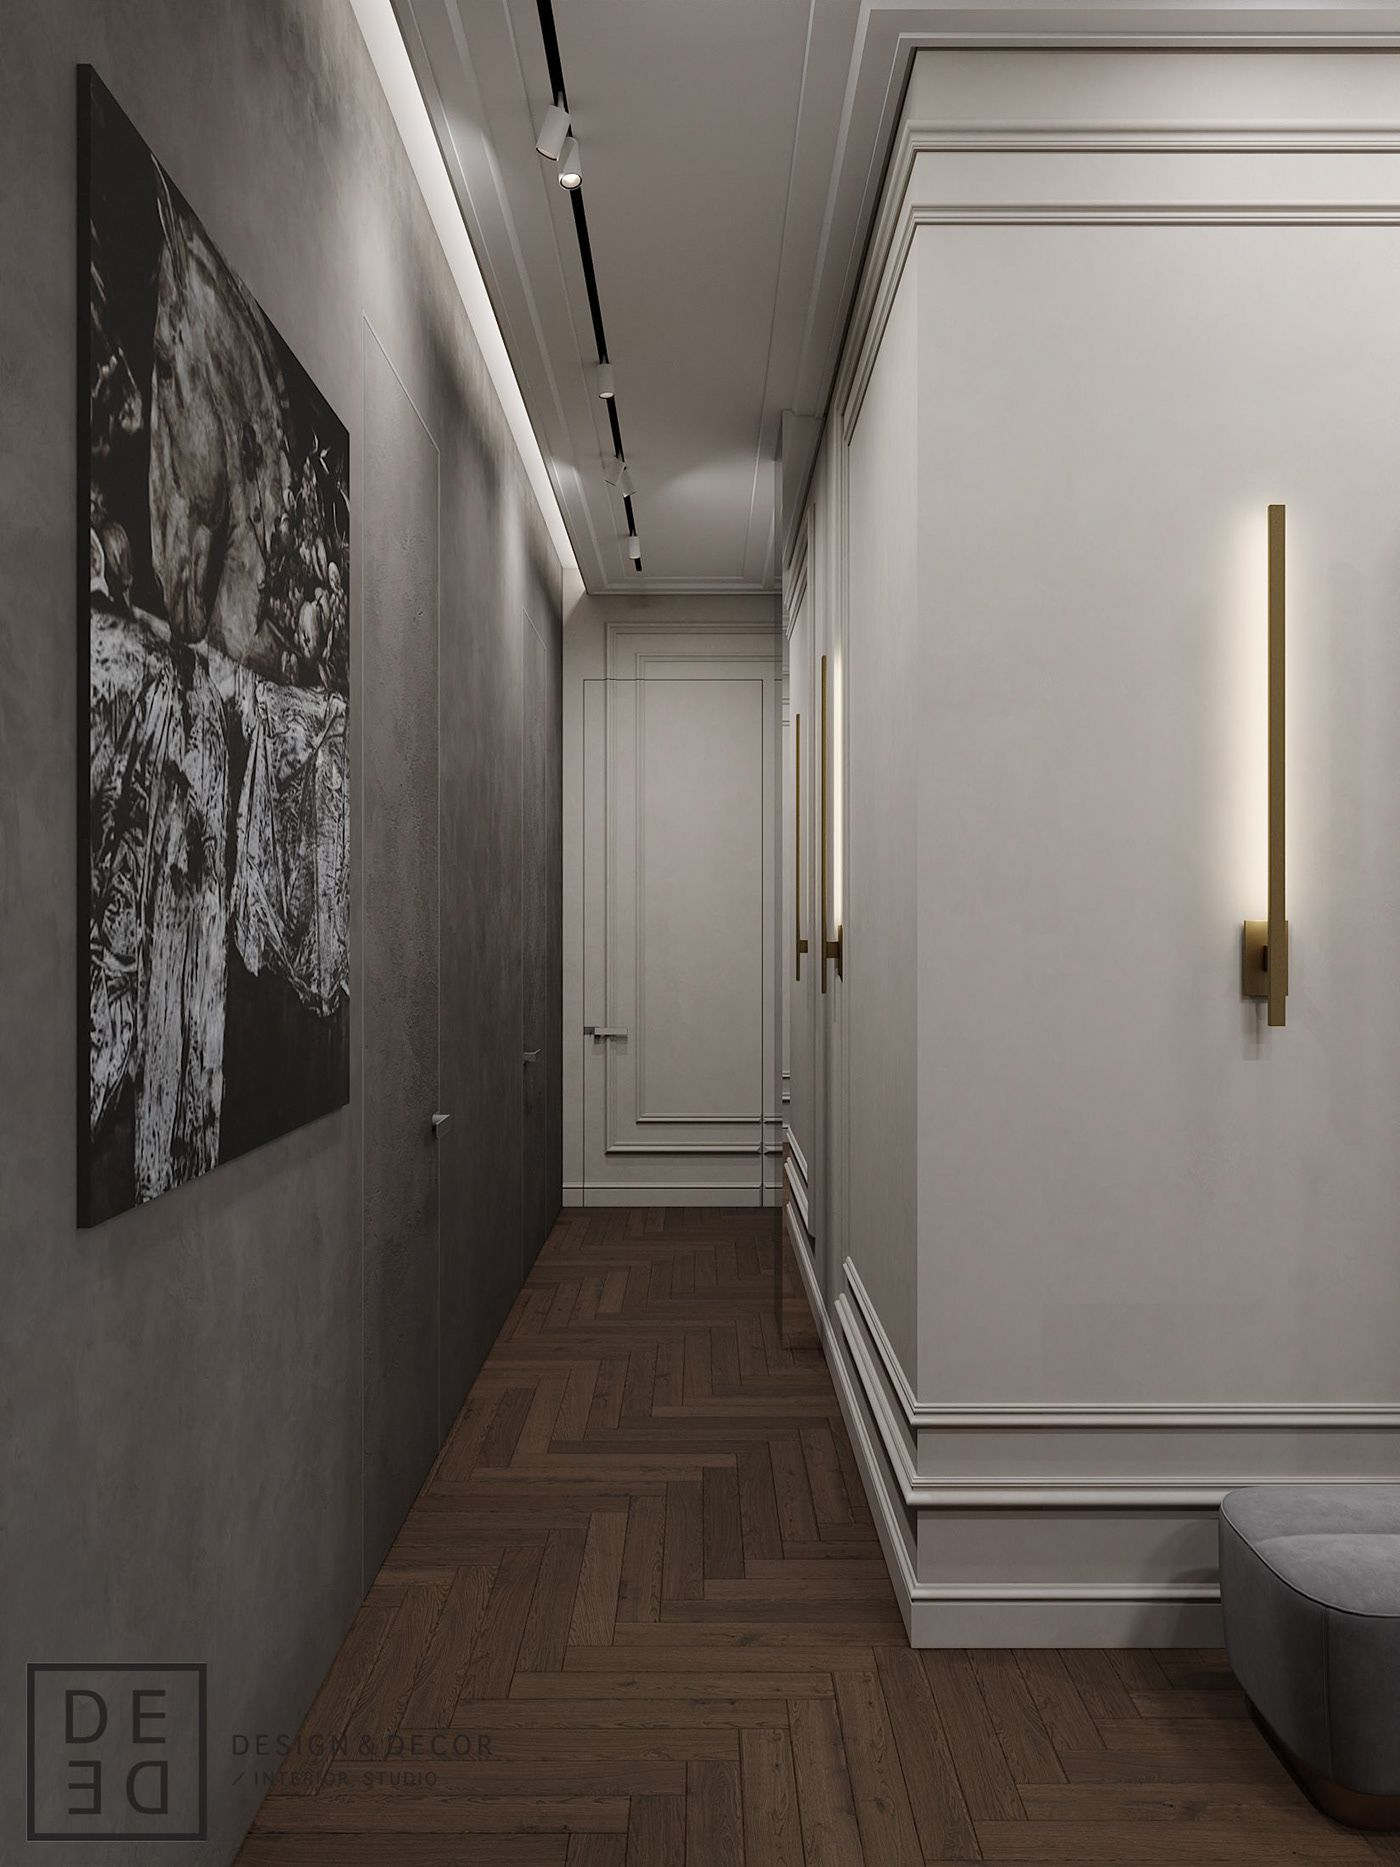 DE&DE/Fusion apartment on Behance | Corridor design